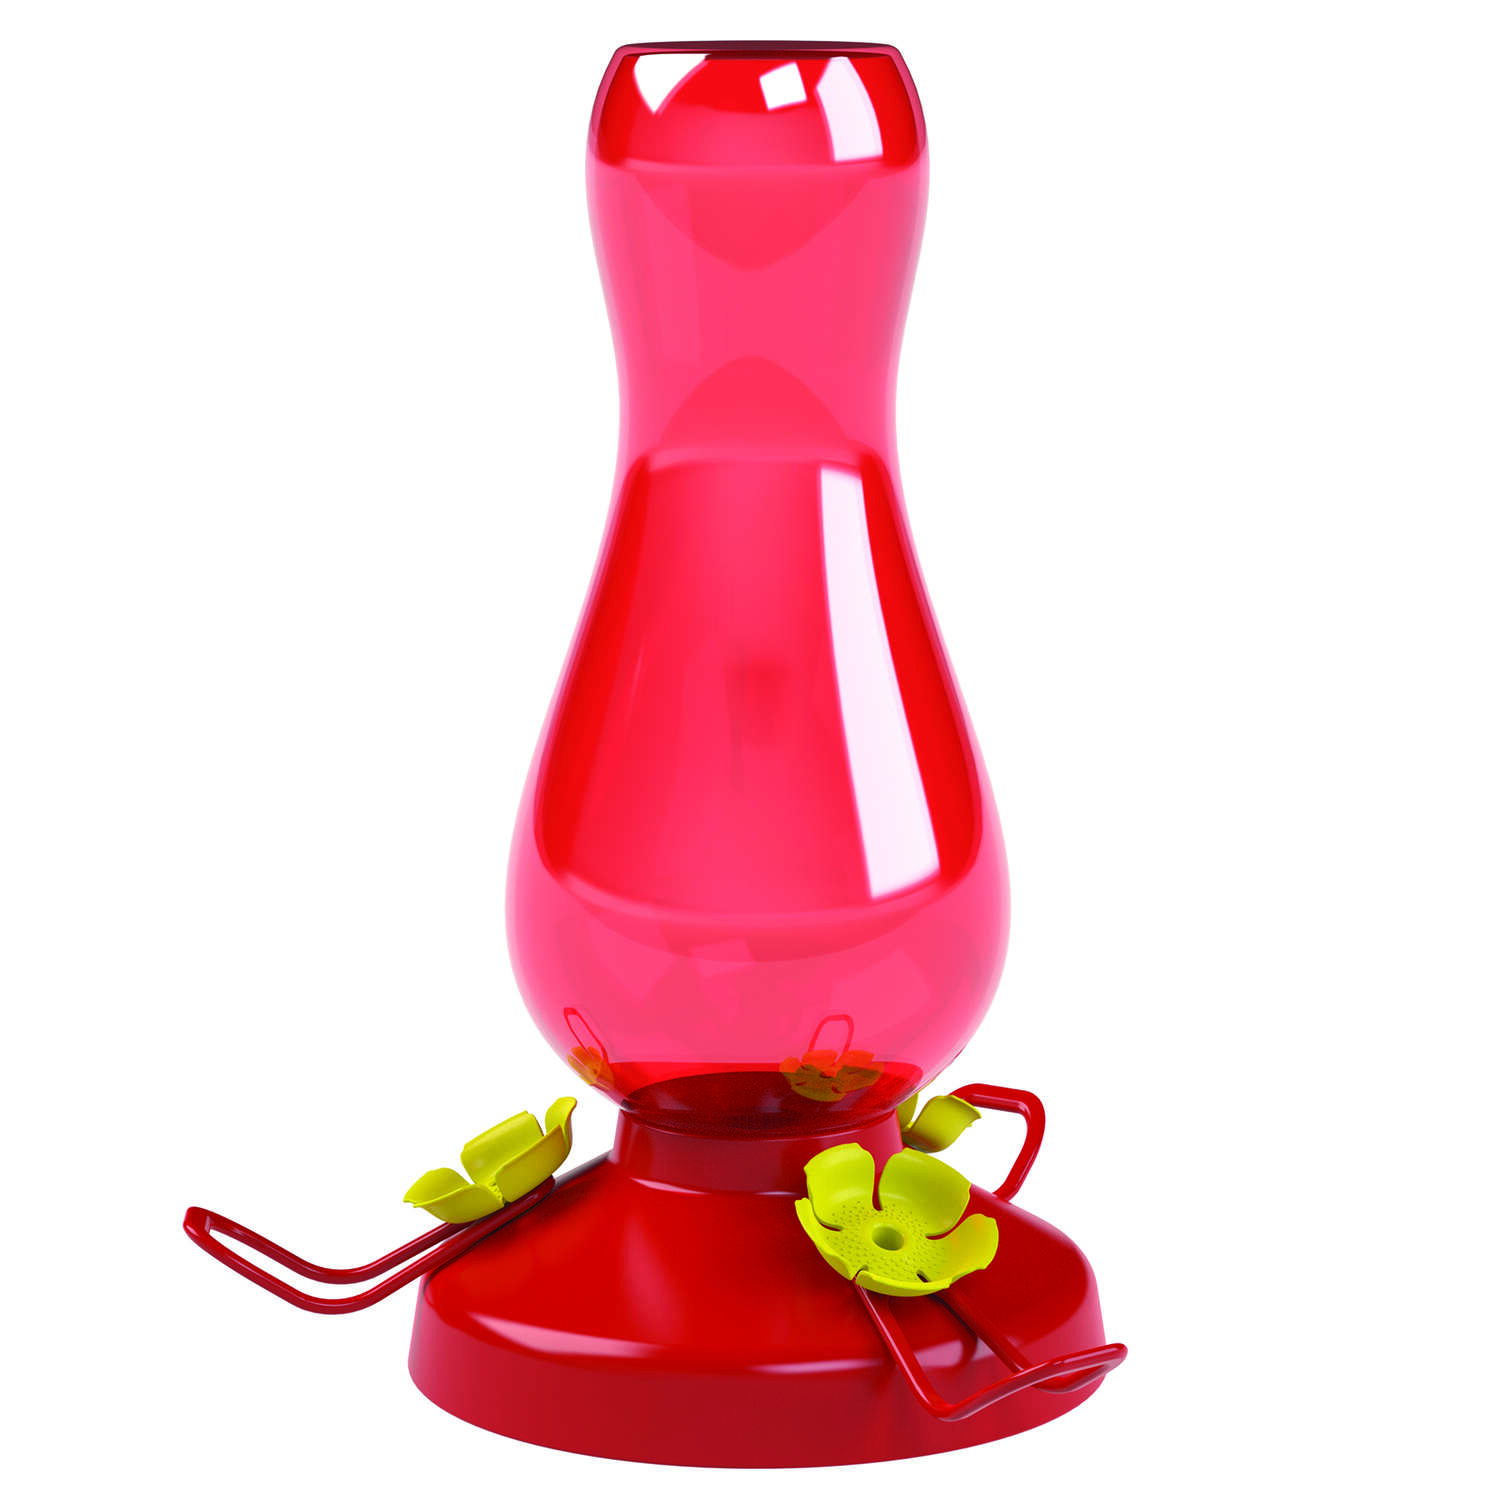 Perky-Pet Hummingbird 19 oz. Plastic Hummingbird Nectar Feeder